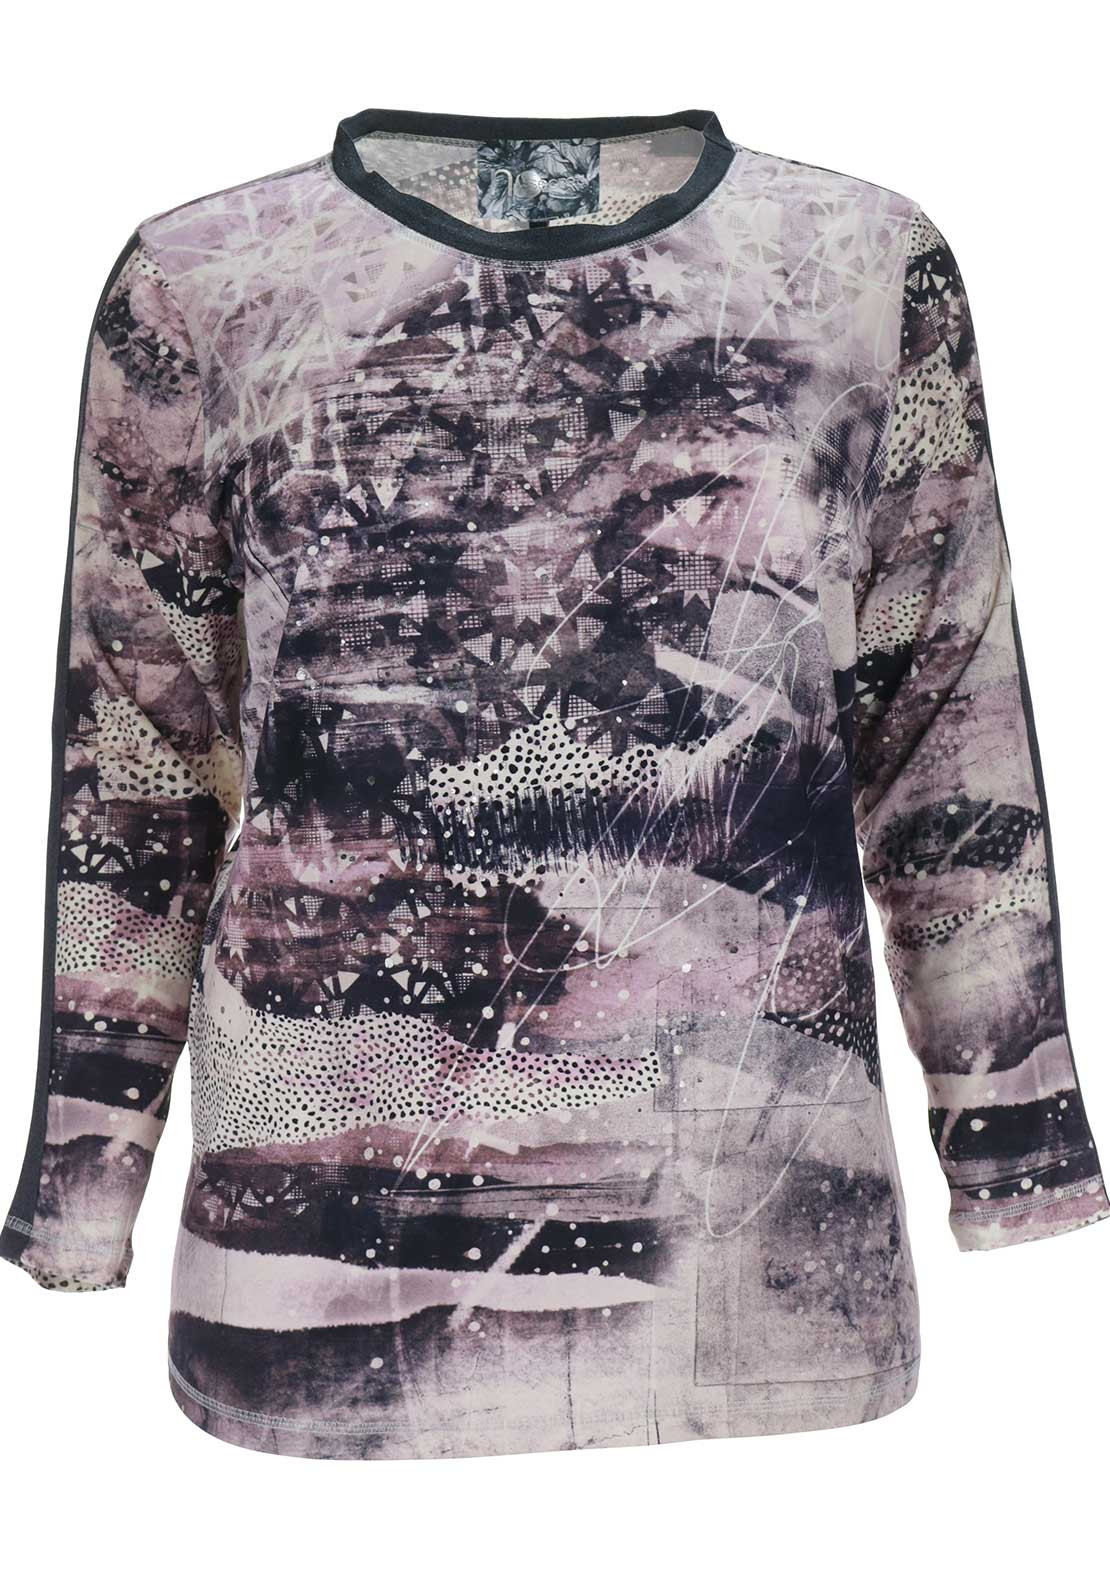 No Secret Printed Long Sleeve Top, Multi-Coloured